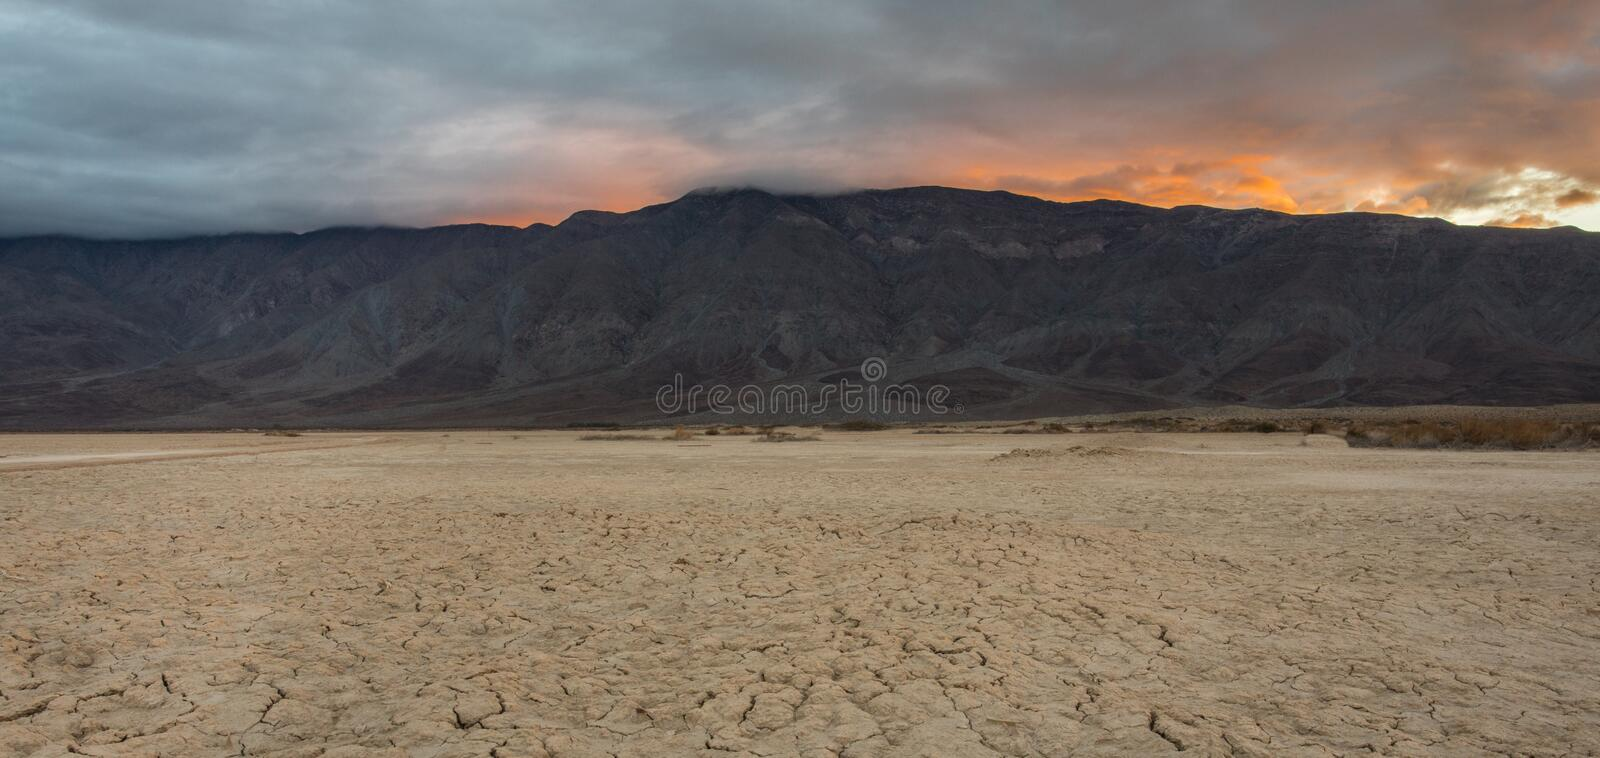 Dry Lake Clark. Sunrise Over Santa Rosa Mountains With Dry Lake Clark In Foreground, Anza Borrego Desert State Park, California stock images